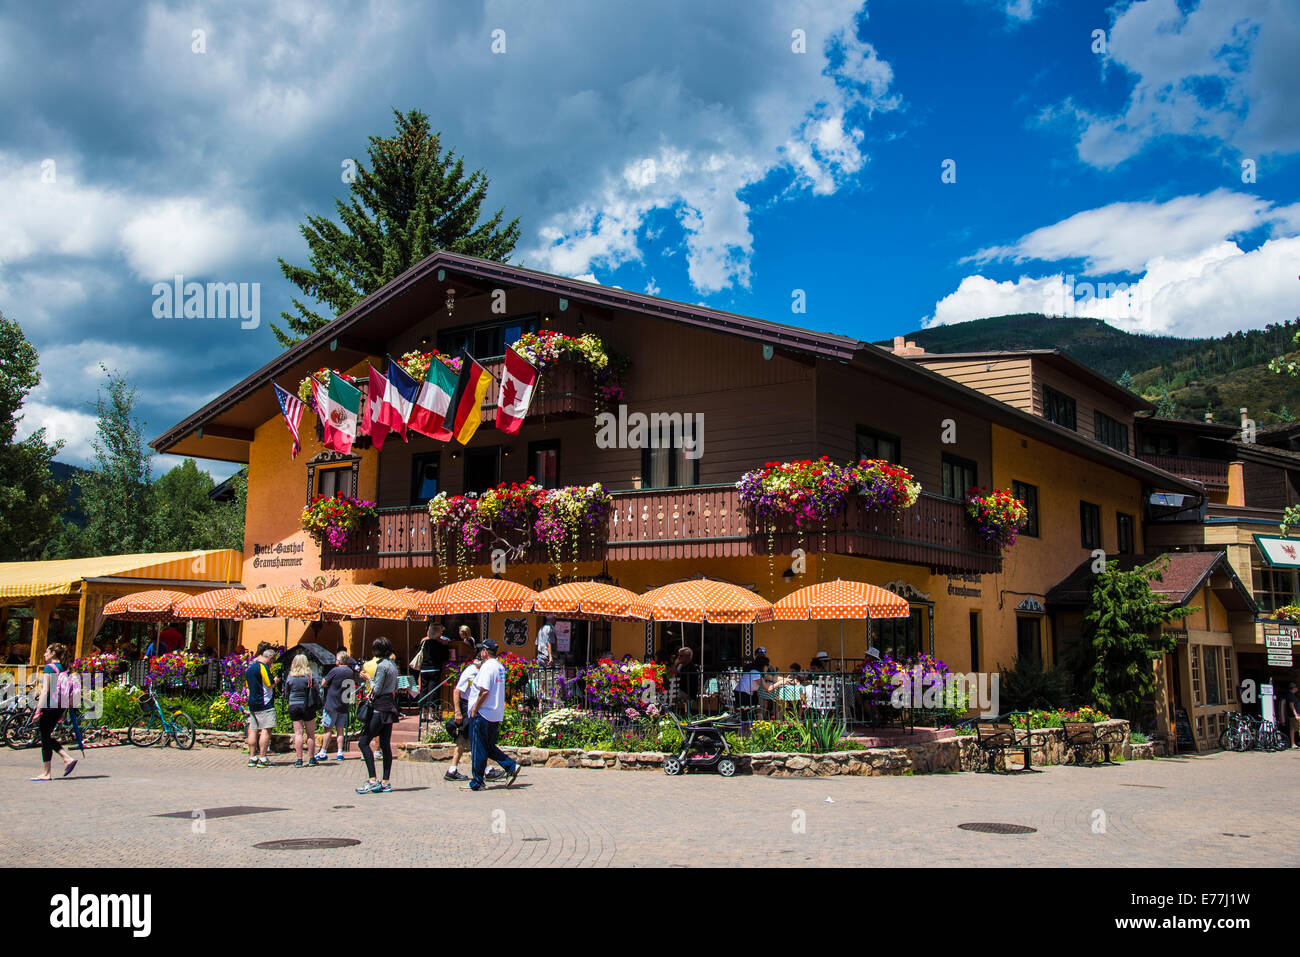 Street Scene In Vail Colorado shjowing flags and building - Stock Image